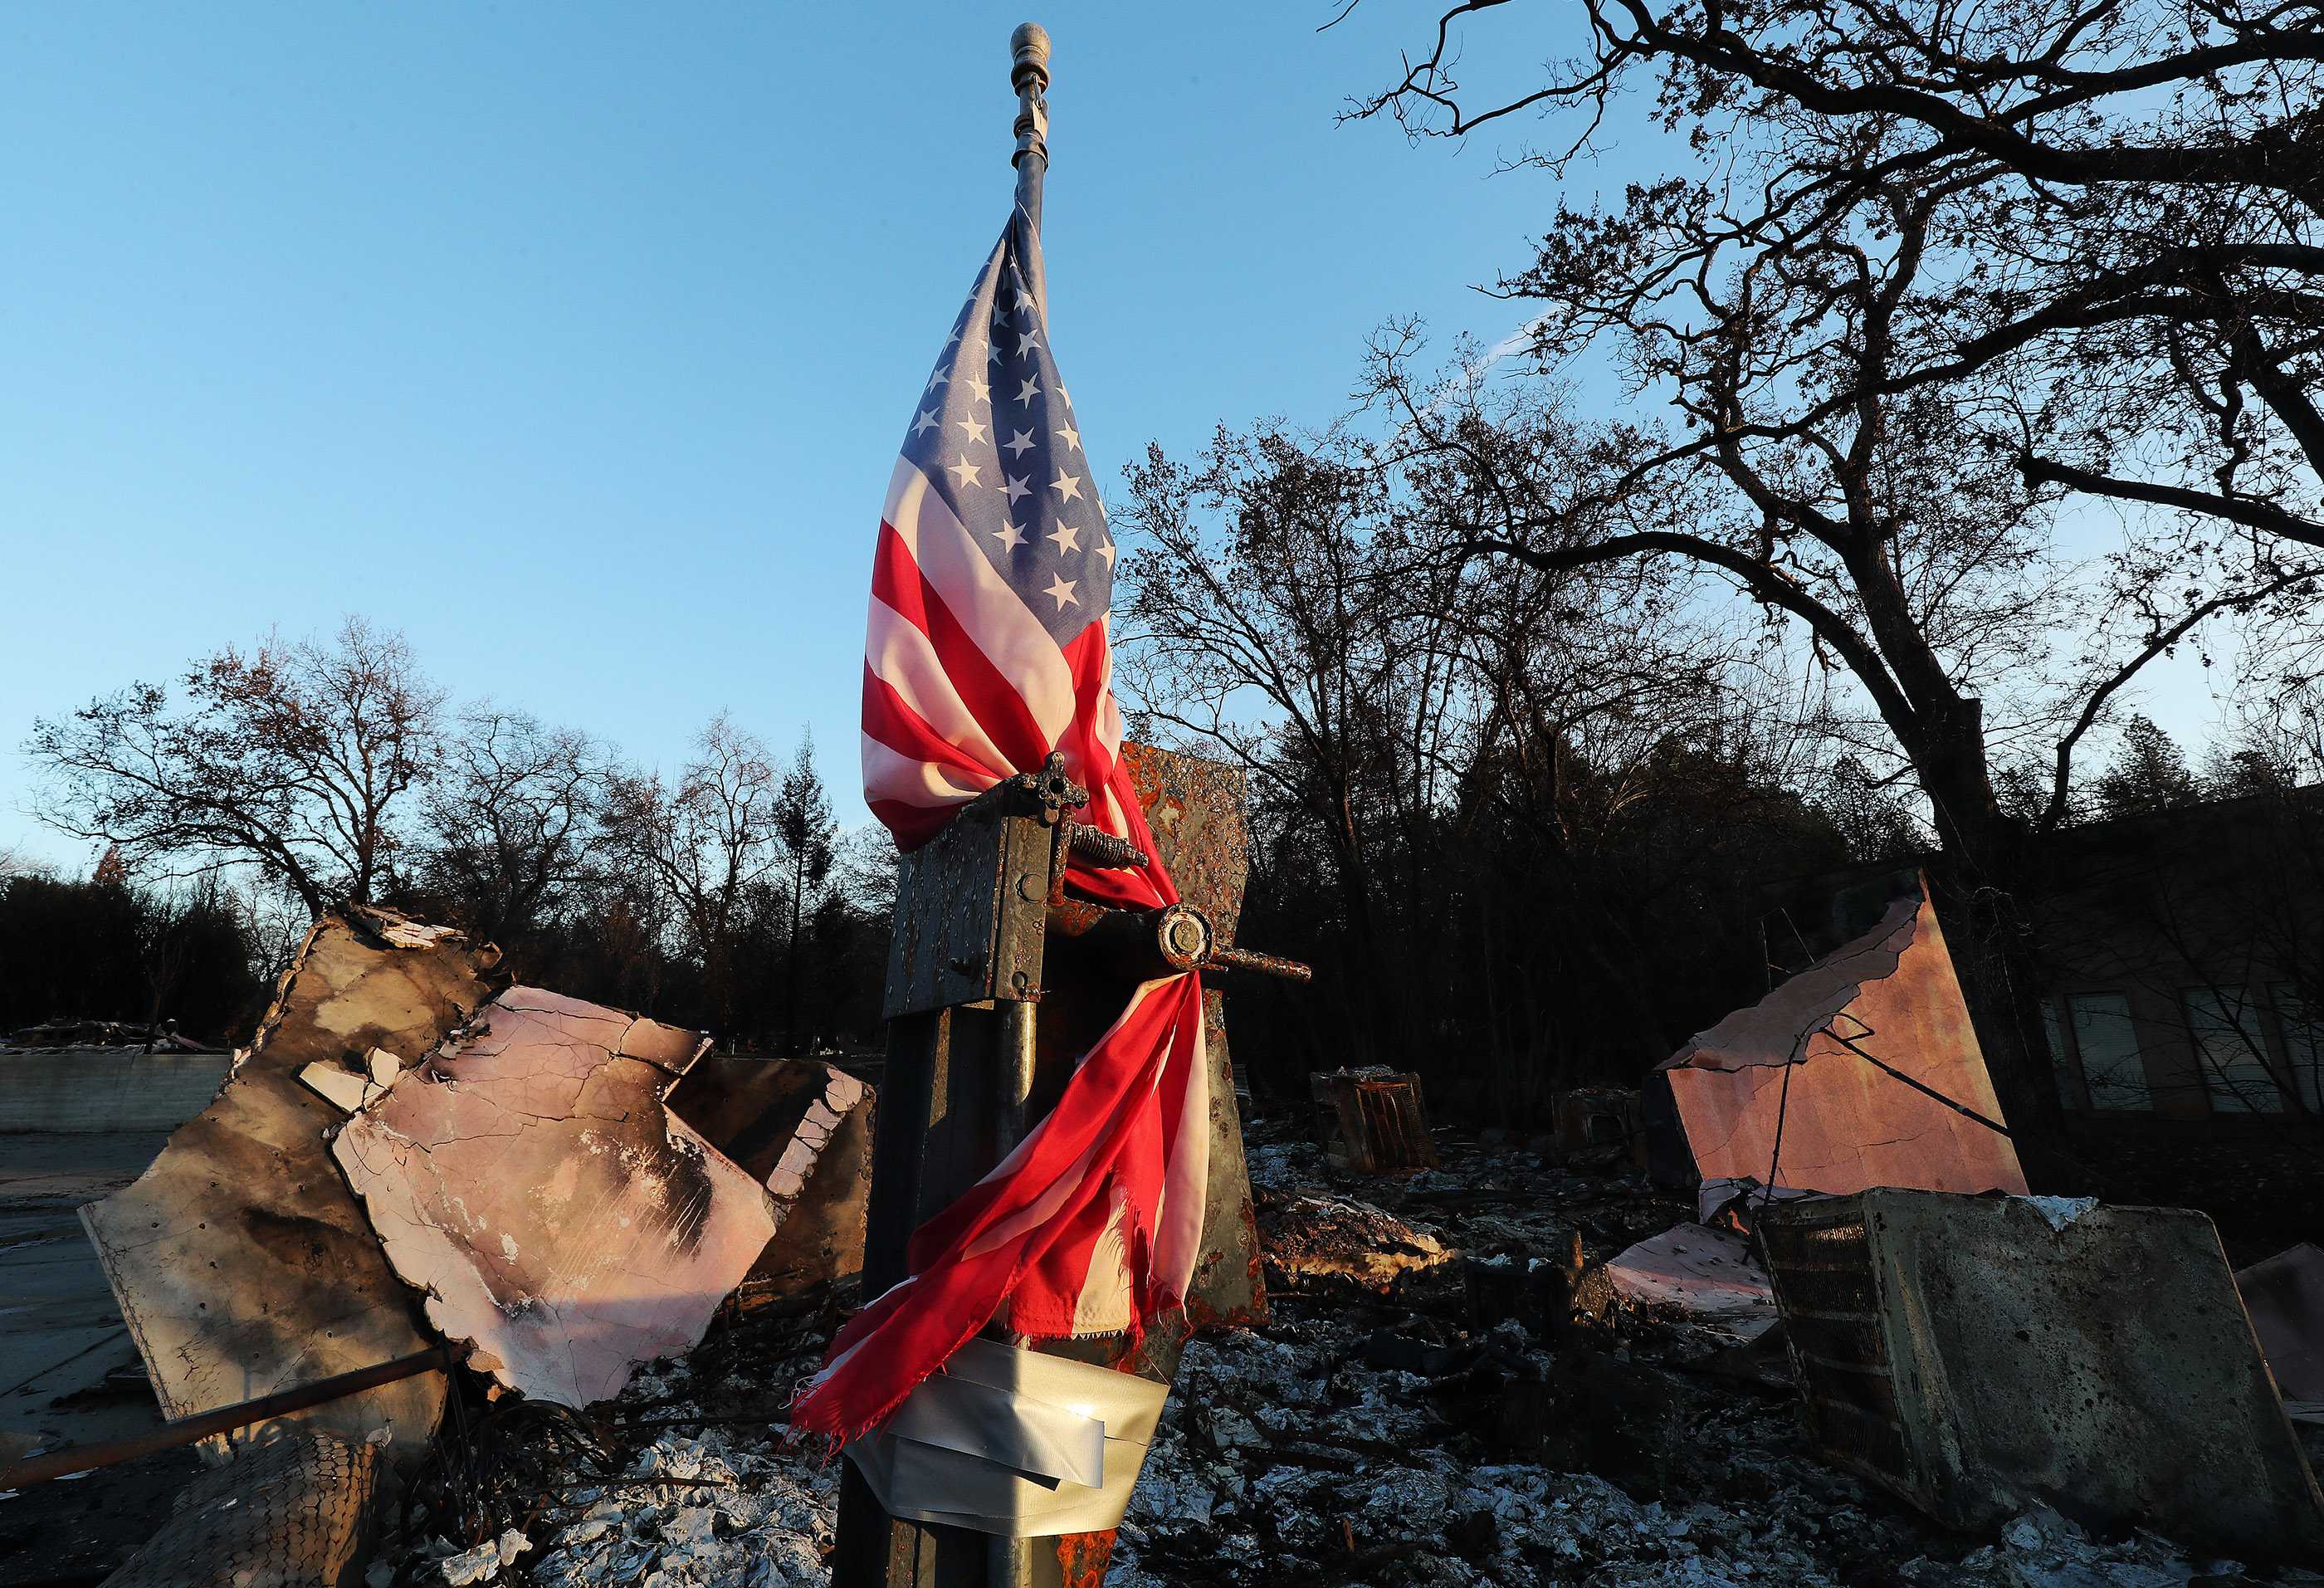 A flag flies over damage in Paradise, California, on Saturday, Jan. 12, 2019, two months after the Camp Fire destroyed more than 18,000 homes and businesses.